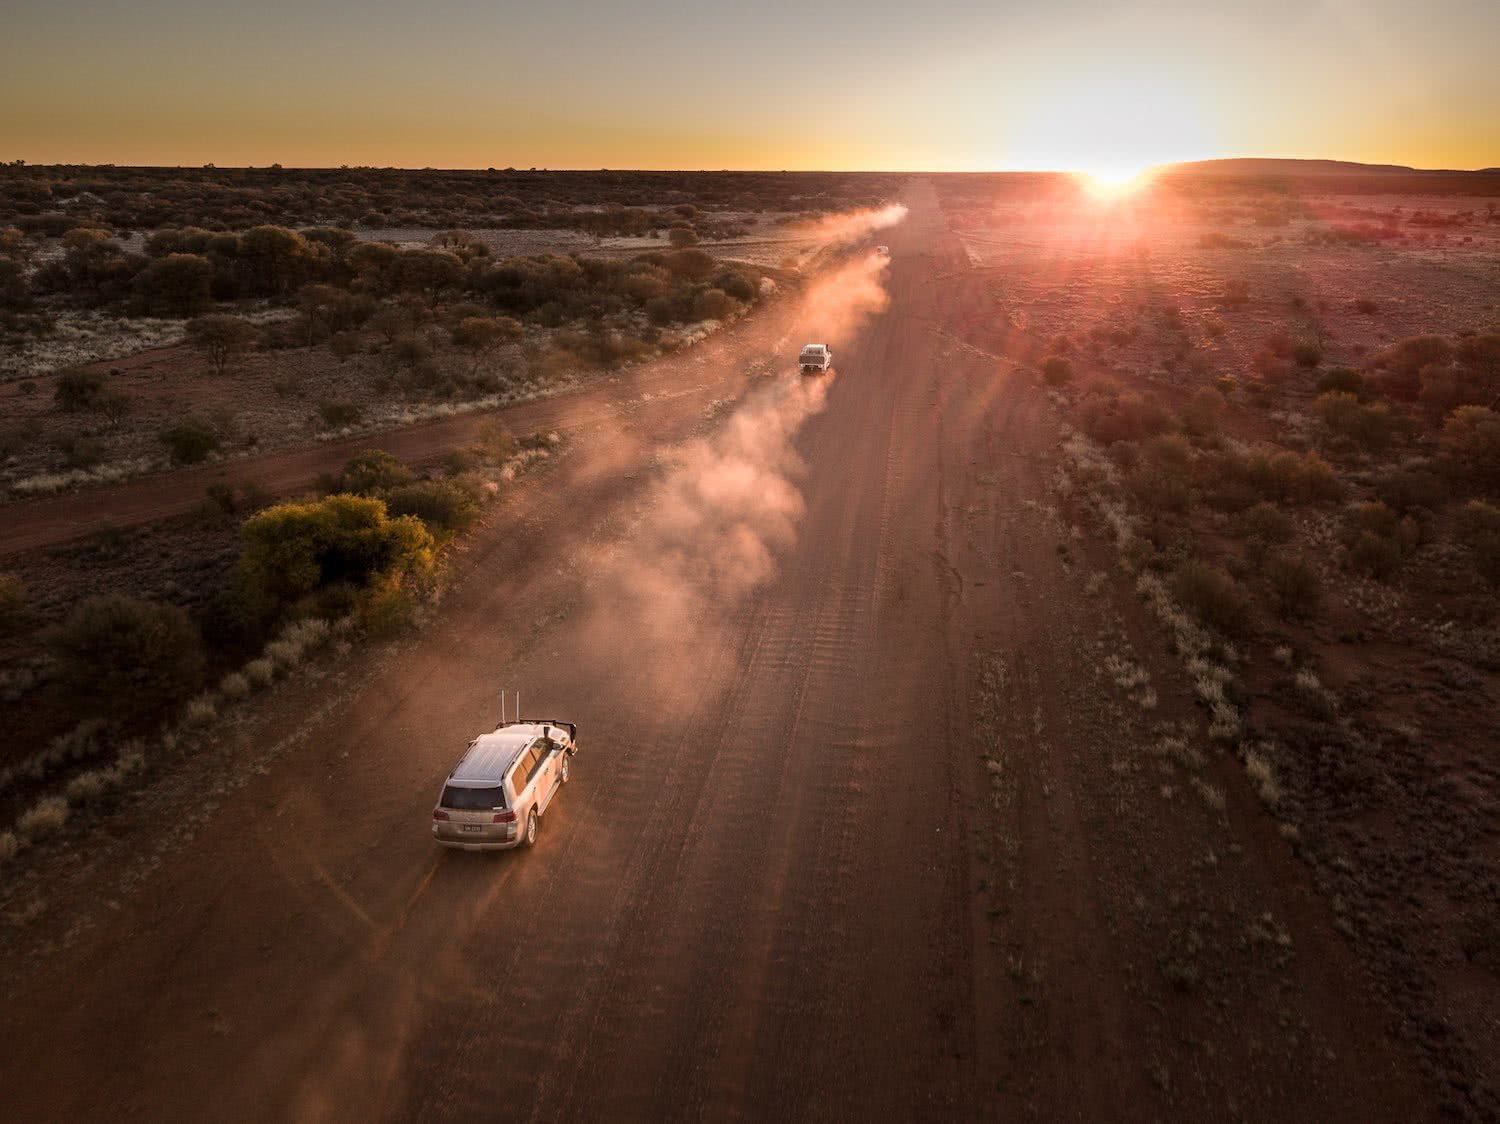 uluru to warakurna, rob mulally, outback way, longest shortcut, outback, red centre, sunset